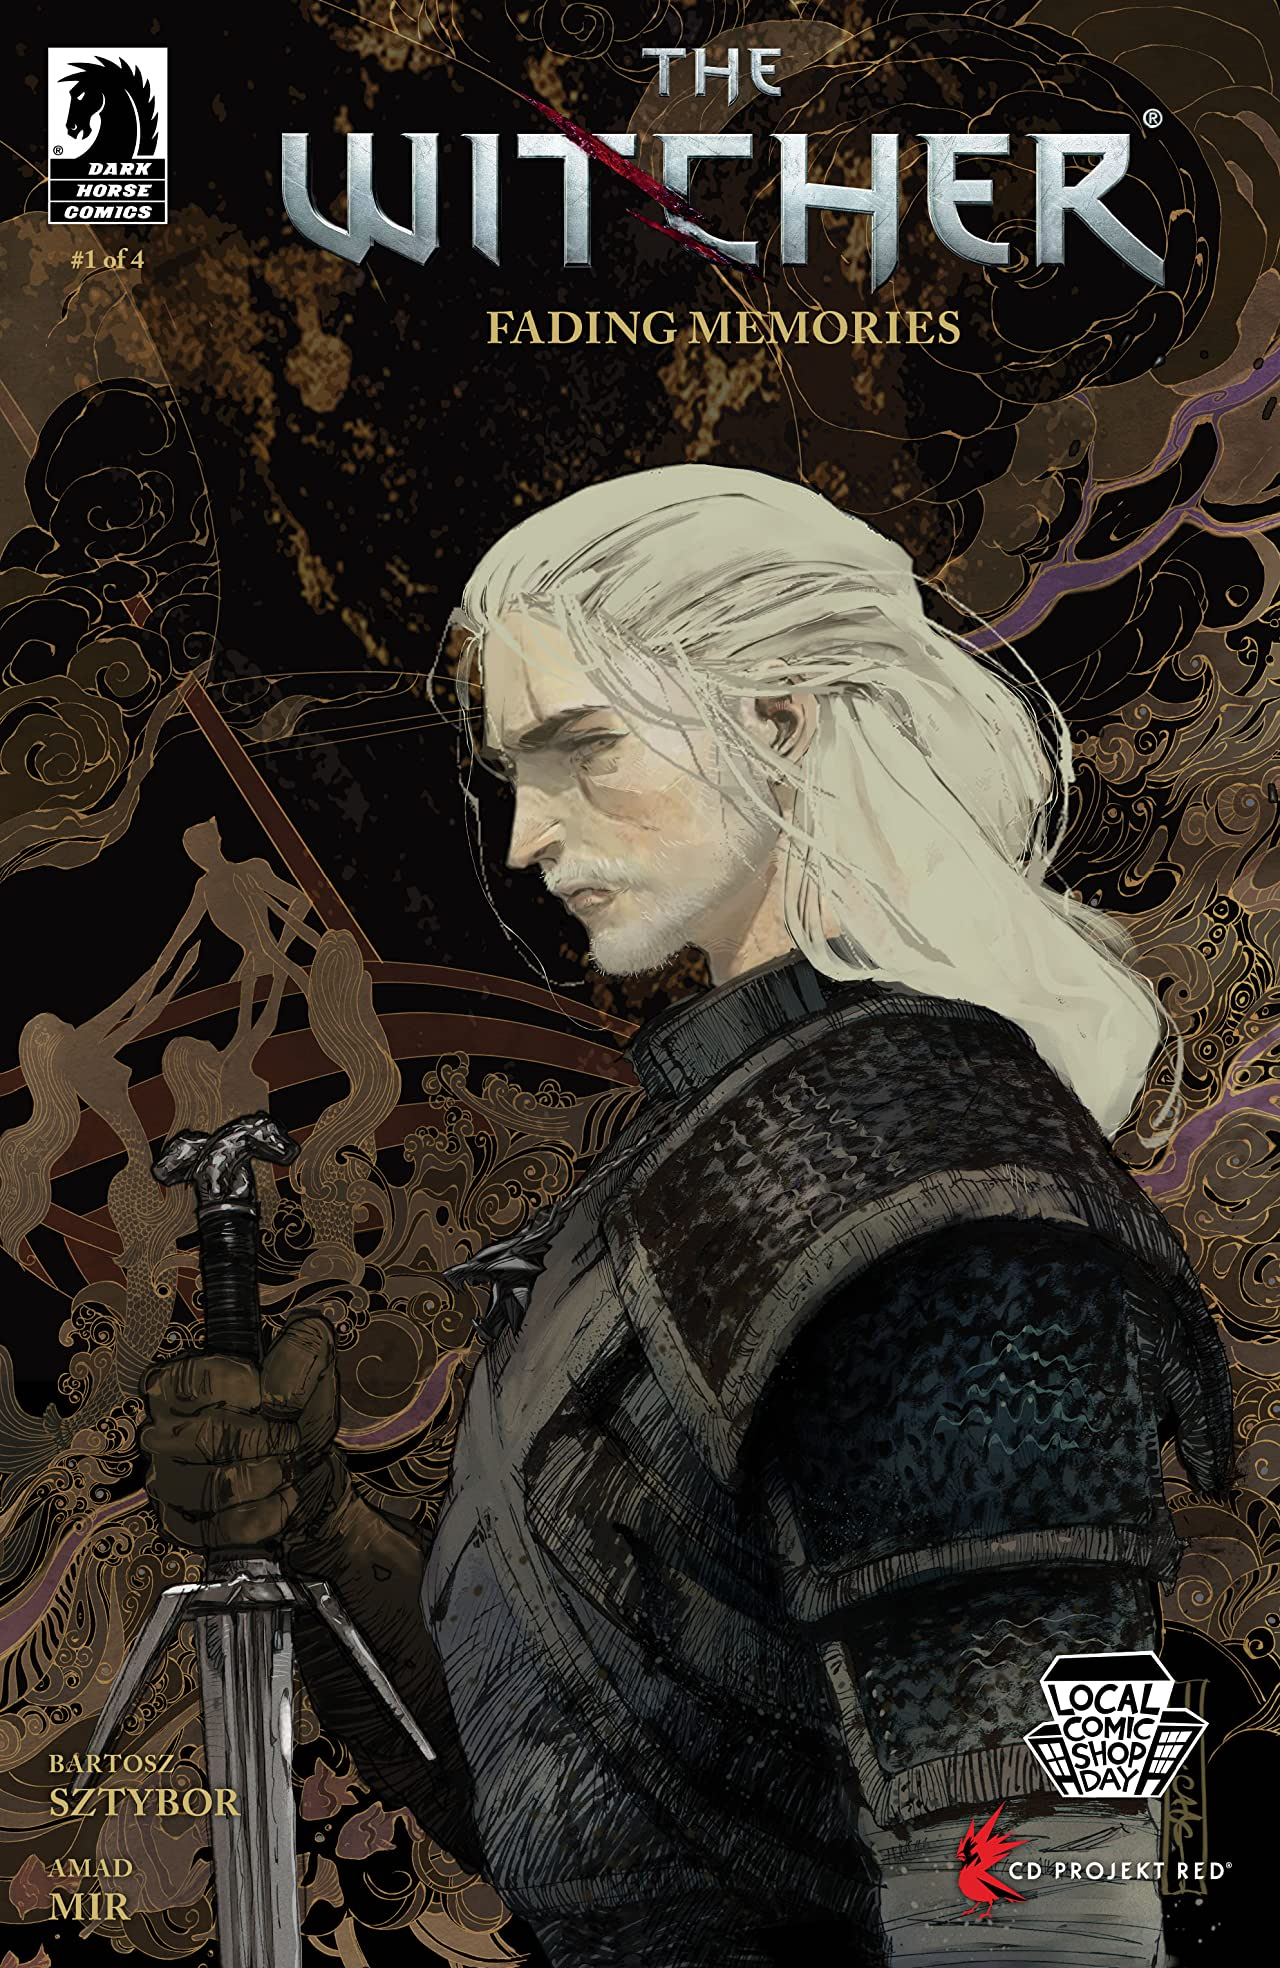 The Witcher: Fading Memories No.1